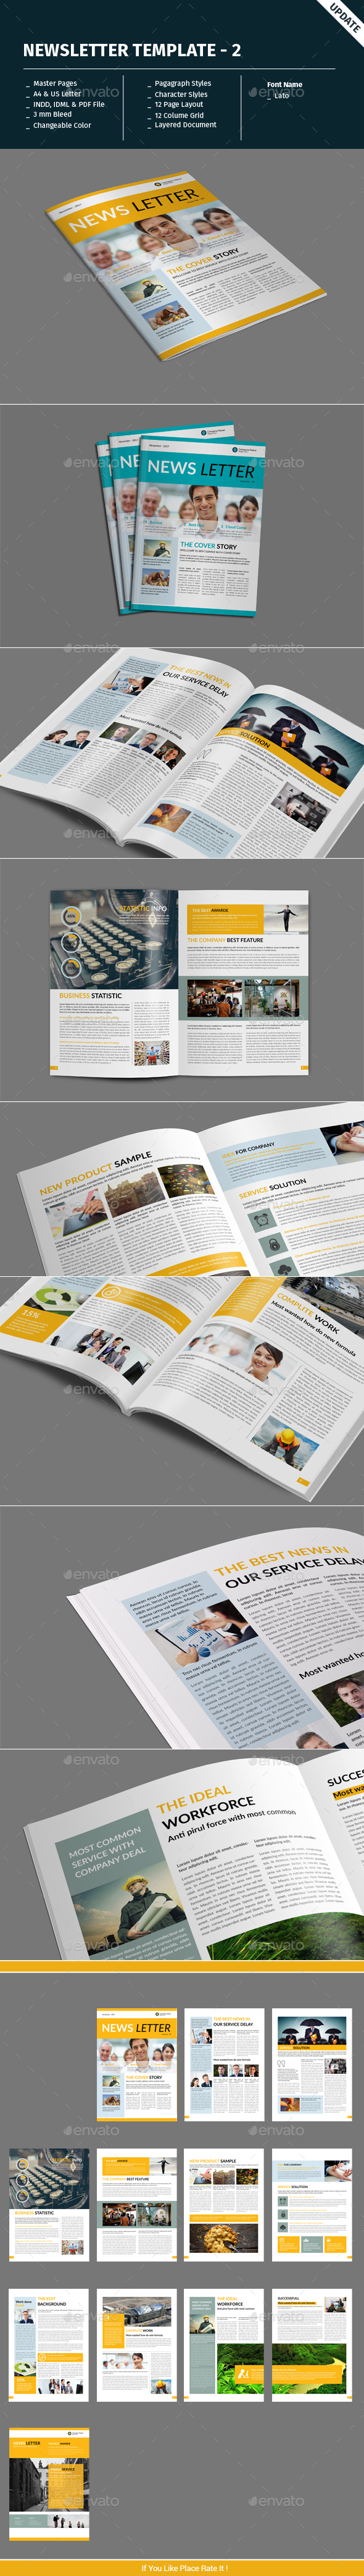 Newsletter Template - 2 - Newsletters Print Templates